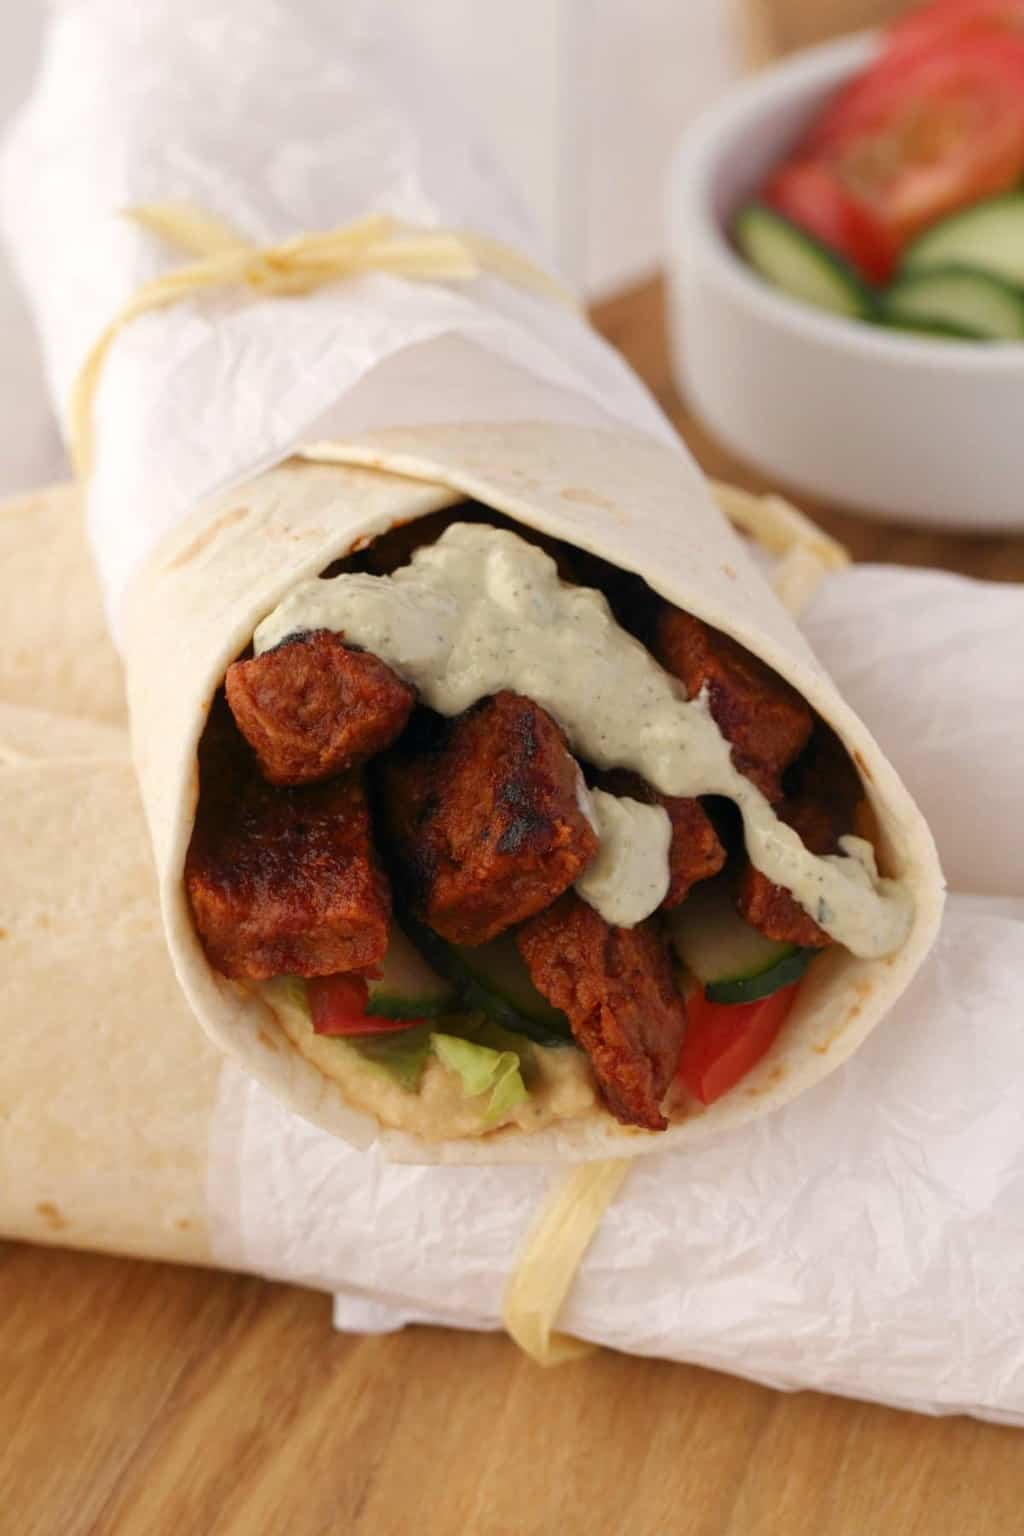 Vegan Shawarma stuffed with seitan, veggies and topped with tzatziki, wrapped with white paper and twine.